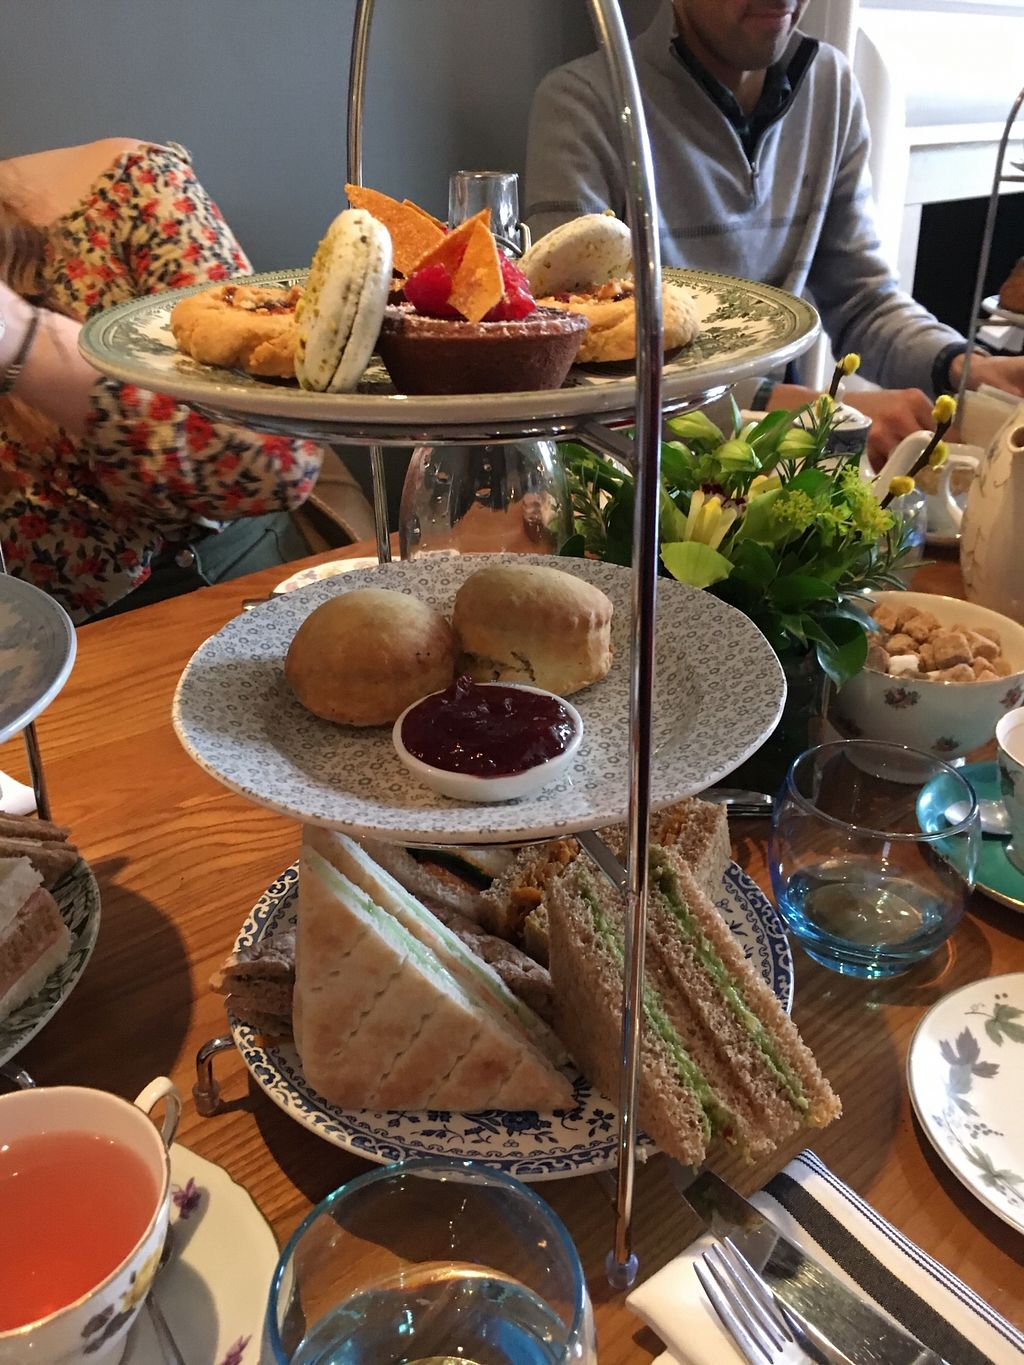 """Photo of 60 Hope Street  by <a href=""""/members/profile/avocado_jess"""">avocado_jess</a> <br/>Vegan afternoon tea in full (for two people) <br/> March 30, 2018  - <a href='/contact/abuse/image/116231/378176'>Report</a>"""